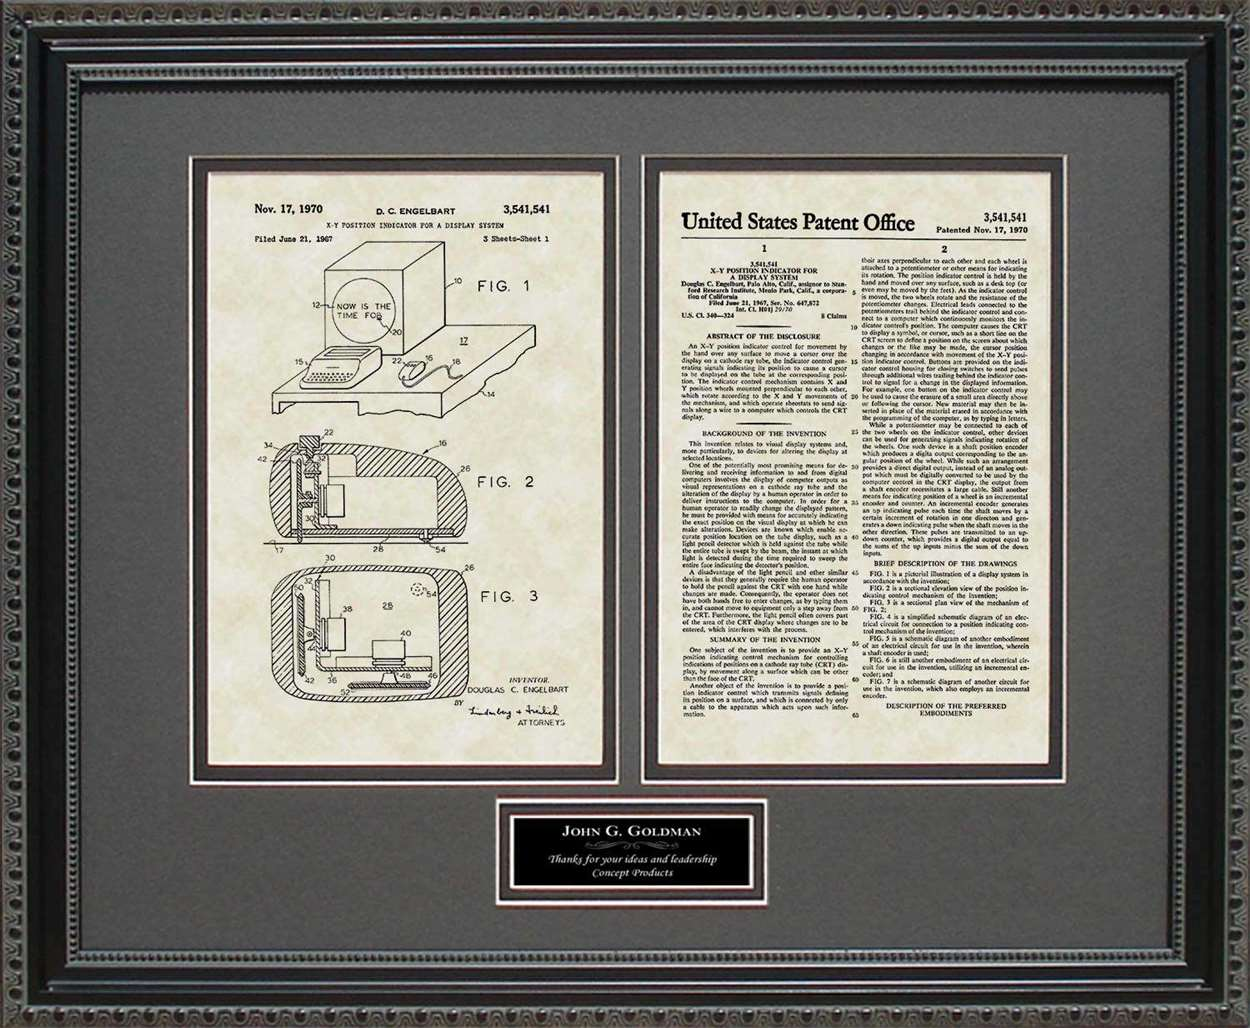 Personalized Computer Mouse Patent, Art & Copy, Engelbart, 1970